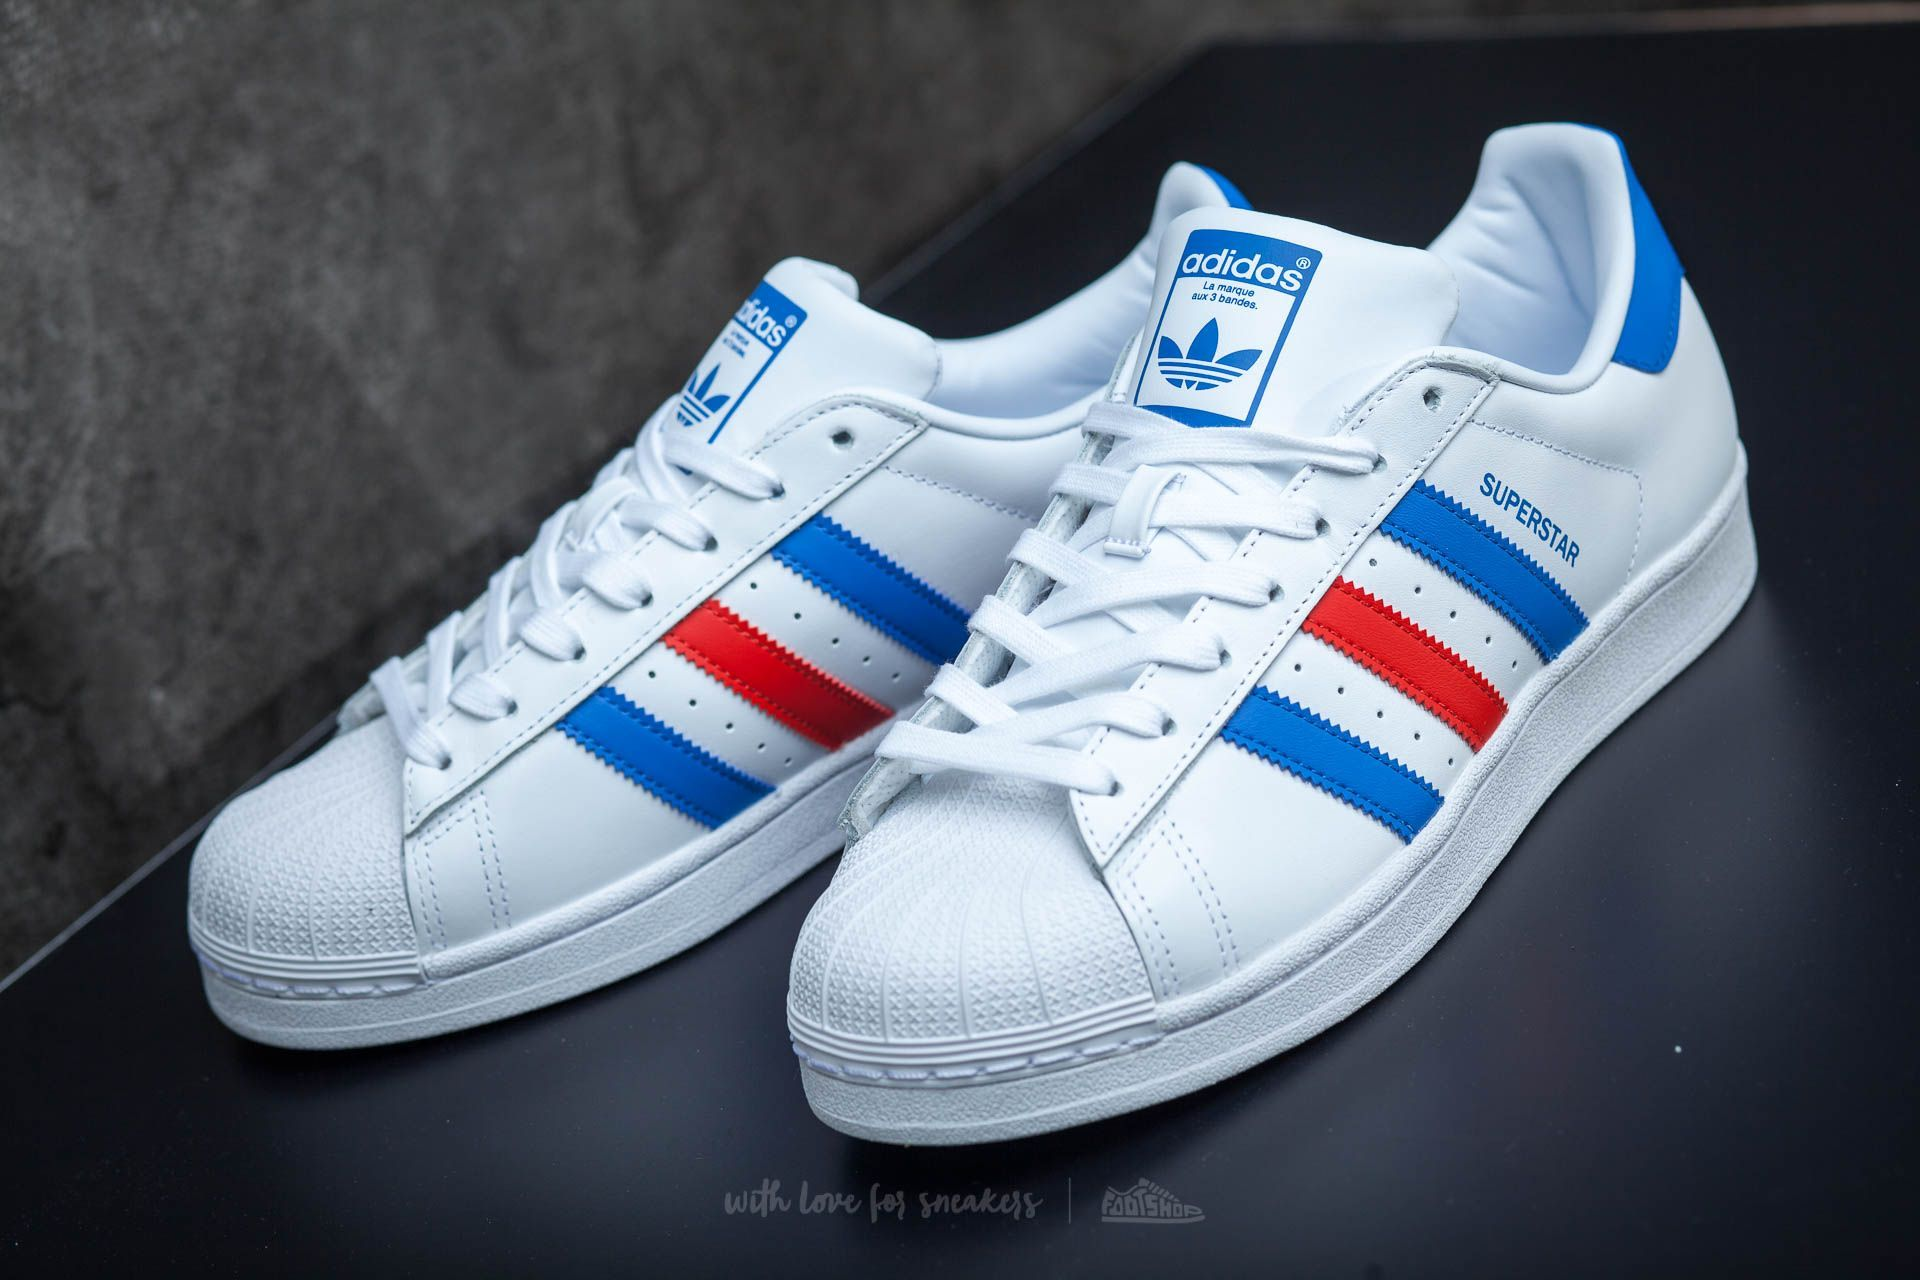 ADIDAS SUPERSTAR FTW WHITE  BLUE  RED  adidas  nmd  shoes  sneaker   sneakerhead  style  outfit  fashion  menstyle  trendway  trends  allstar   superstar 211e3f5bef